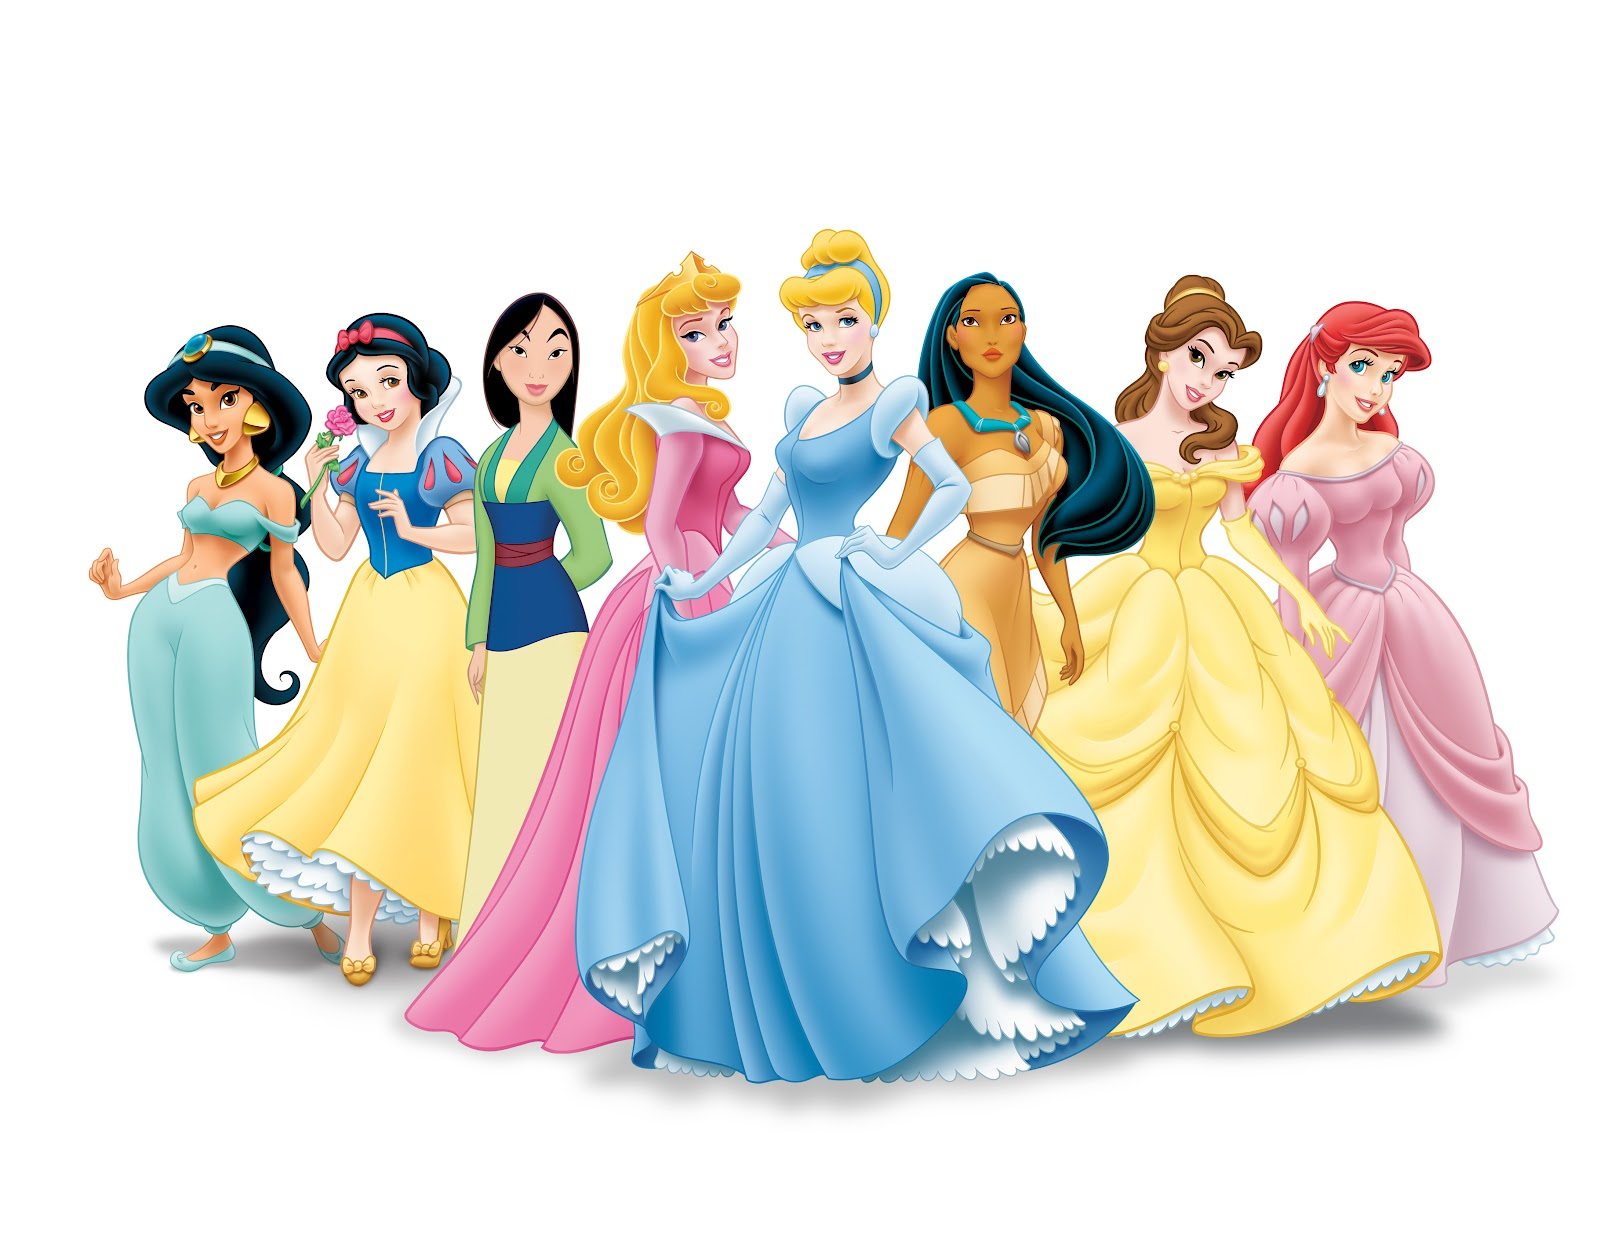 Disney Princesses   Best Coloring Pages   Free Coloring Pages     Disney Princess is a Walt Disney Company franchise  based on fictional  characters who have been featured as part of the Disney character line up